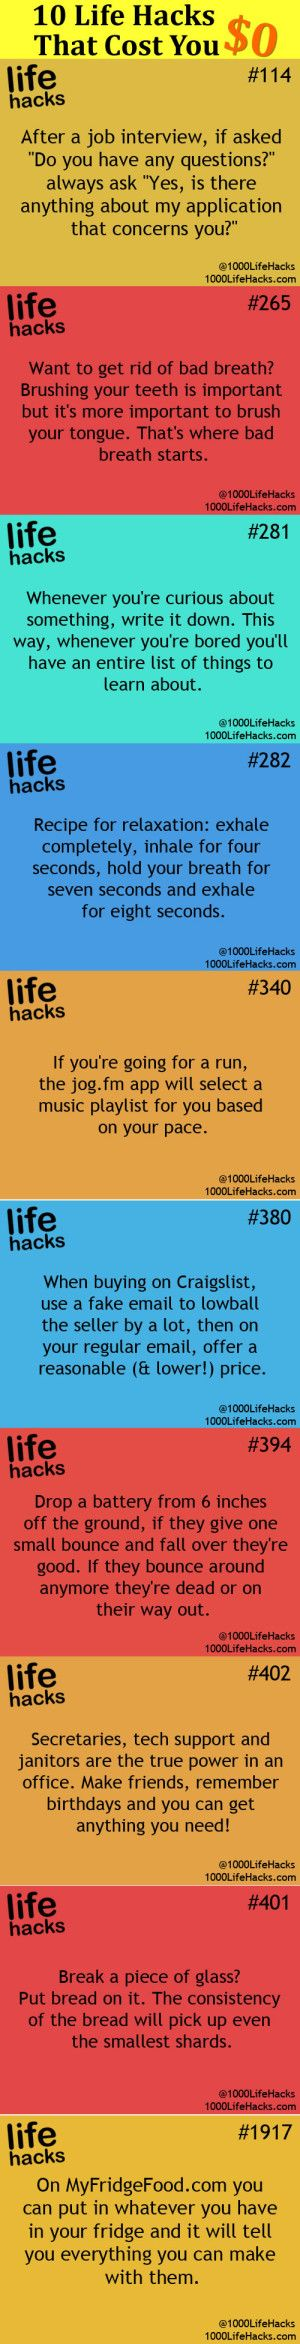 life-hacks-financial-saving-money